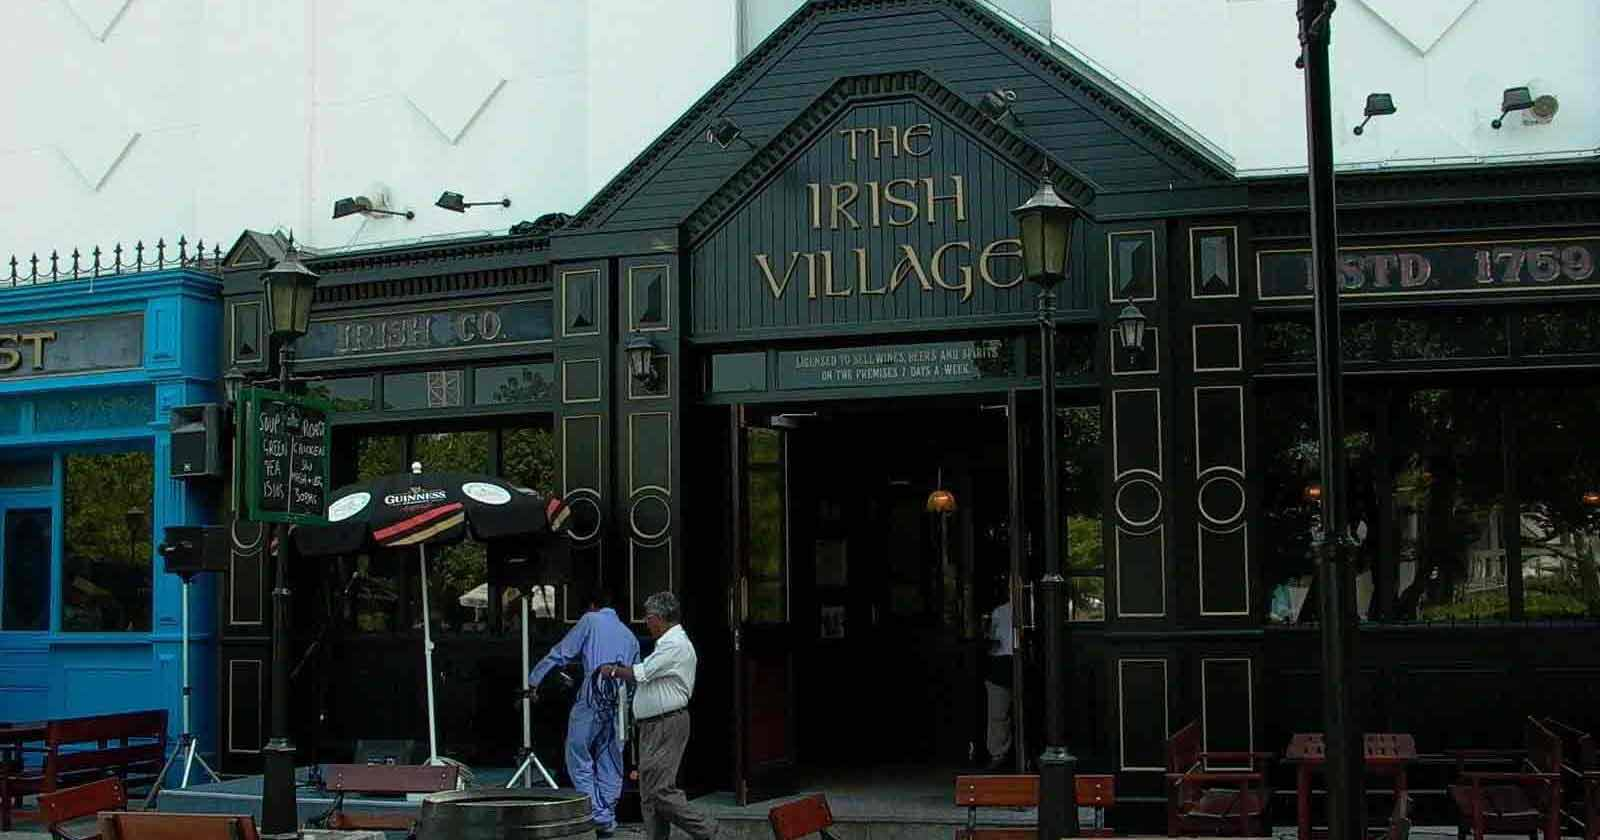 The Irish Village in Dubai